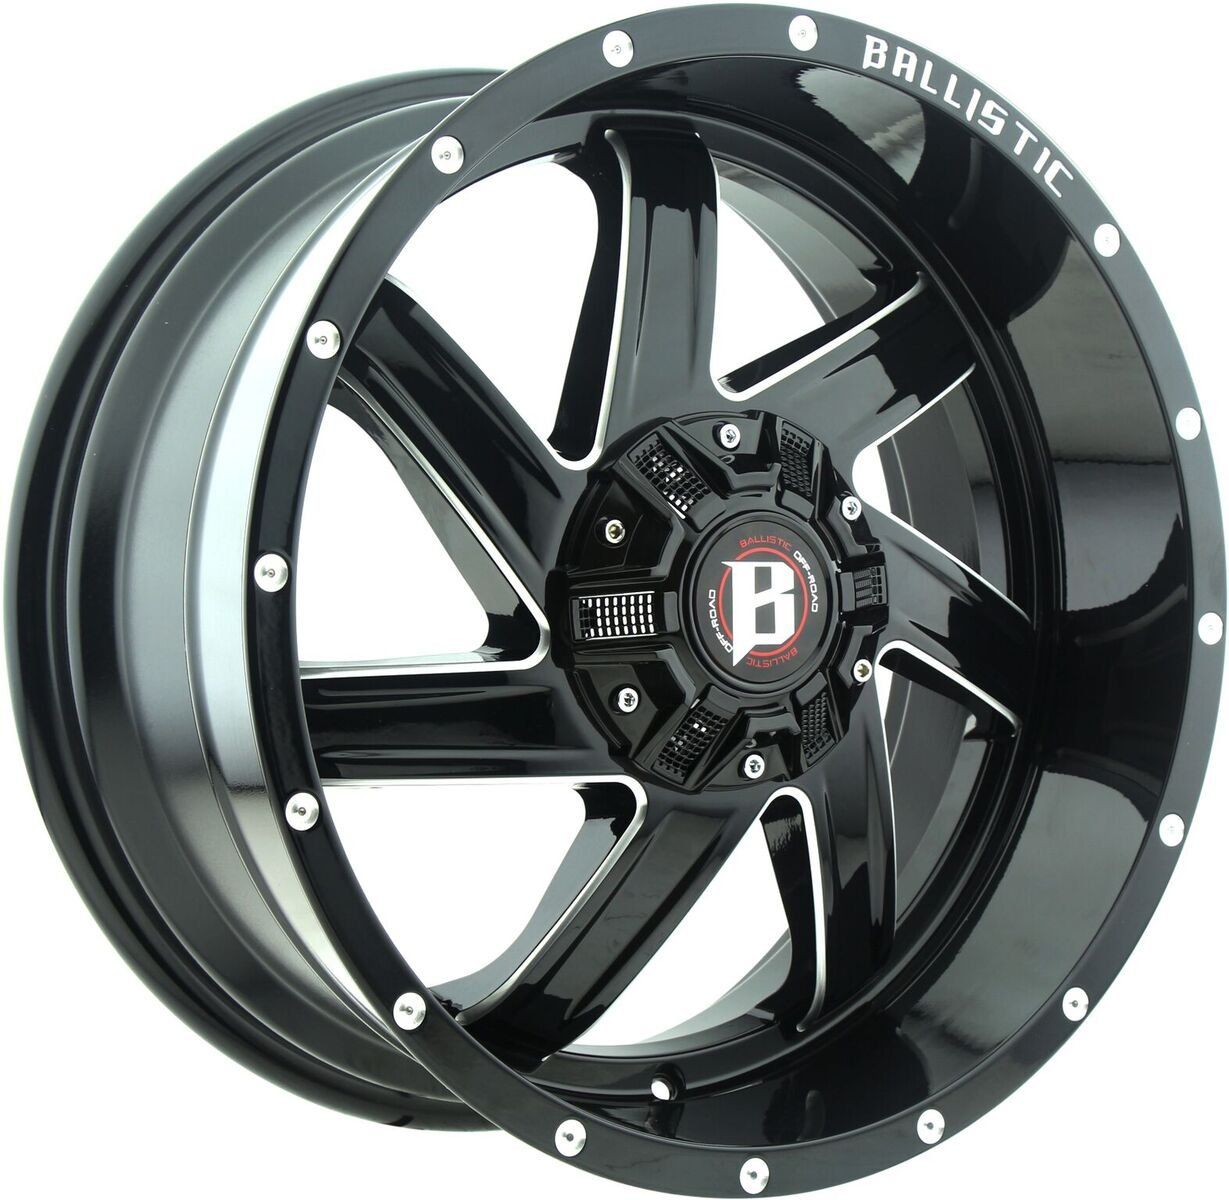 Ballistic-961-Guillotine-20×9-Black-and-Milled-Wheel-6-135-6-1397-mm-Bolt-Pattern-12-mm-Offset-1061-mm-Hub-Bore